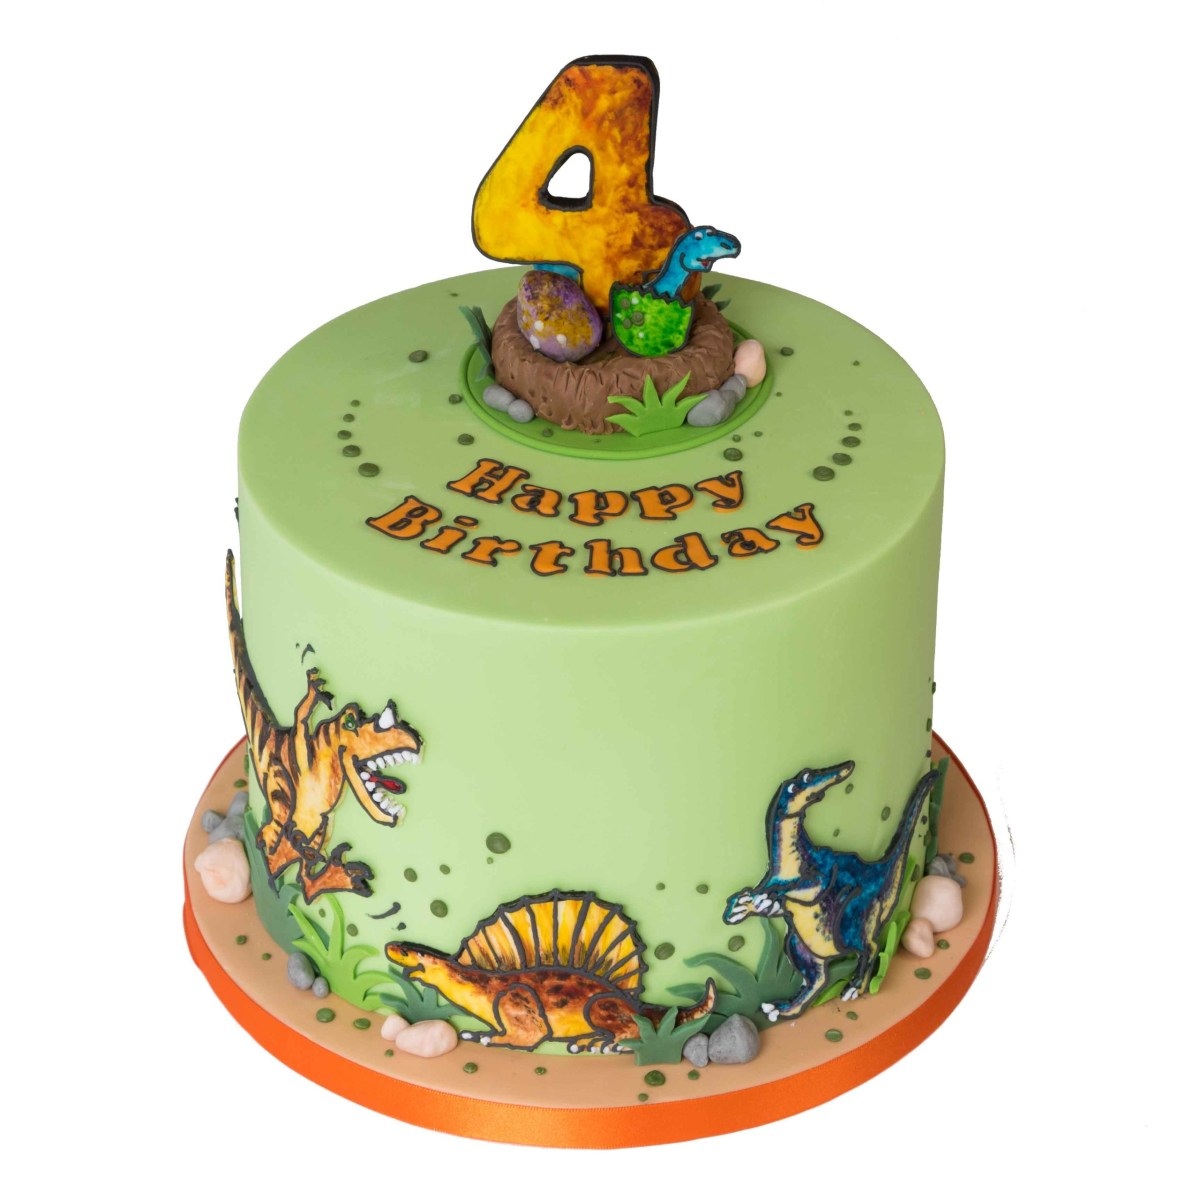 32+ Excellent Image of Dinosaur Birthday Cake